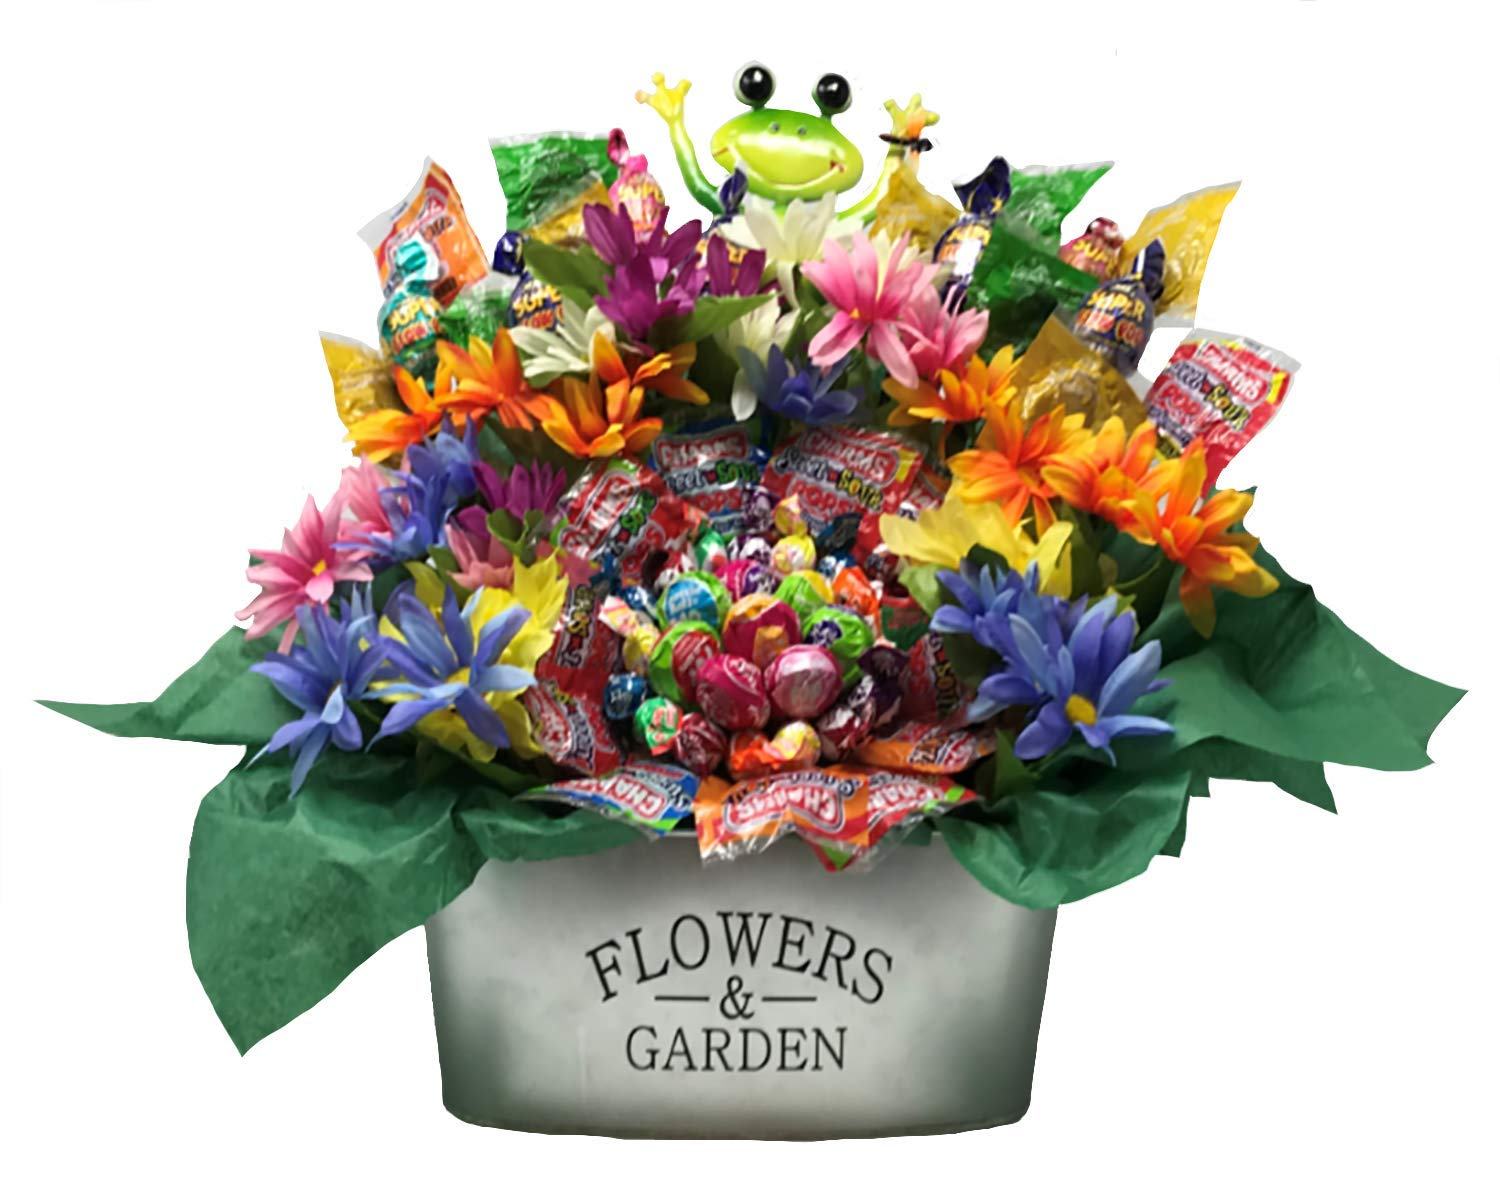 Spring Candy Bouquet with Happy Frog, Lollipops Arranged as Flowers, Daisy's and Galvanized Garden Planter.